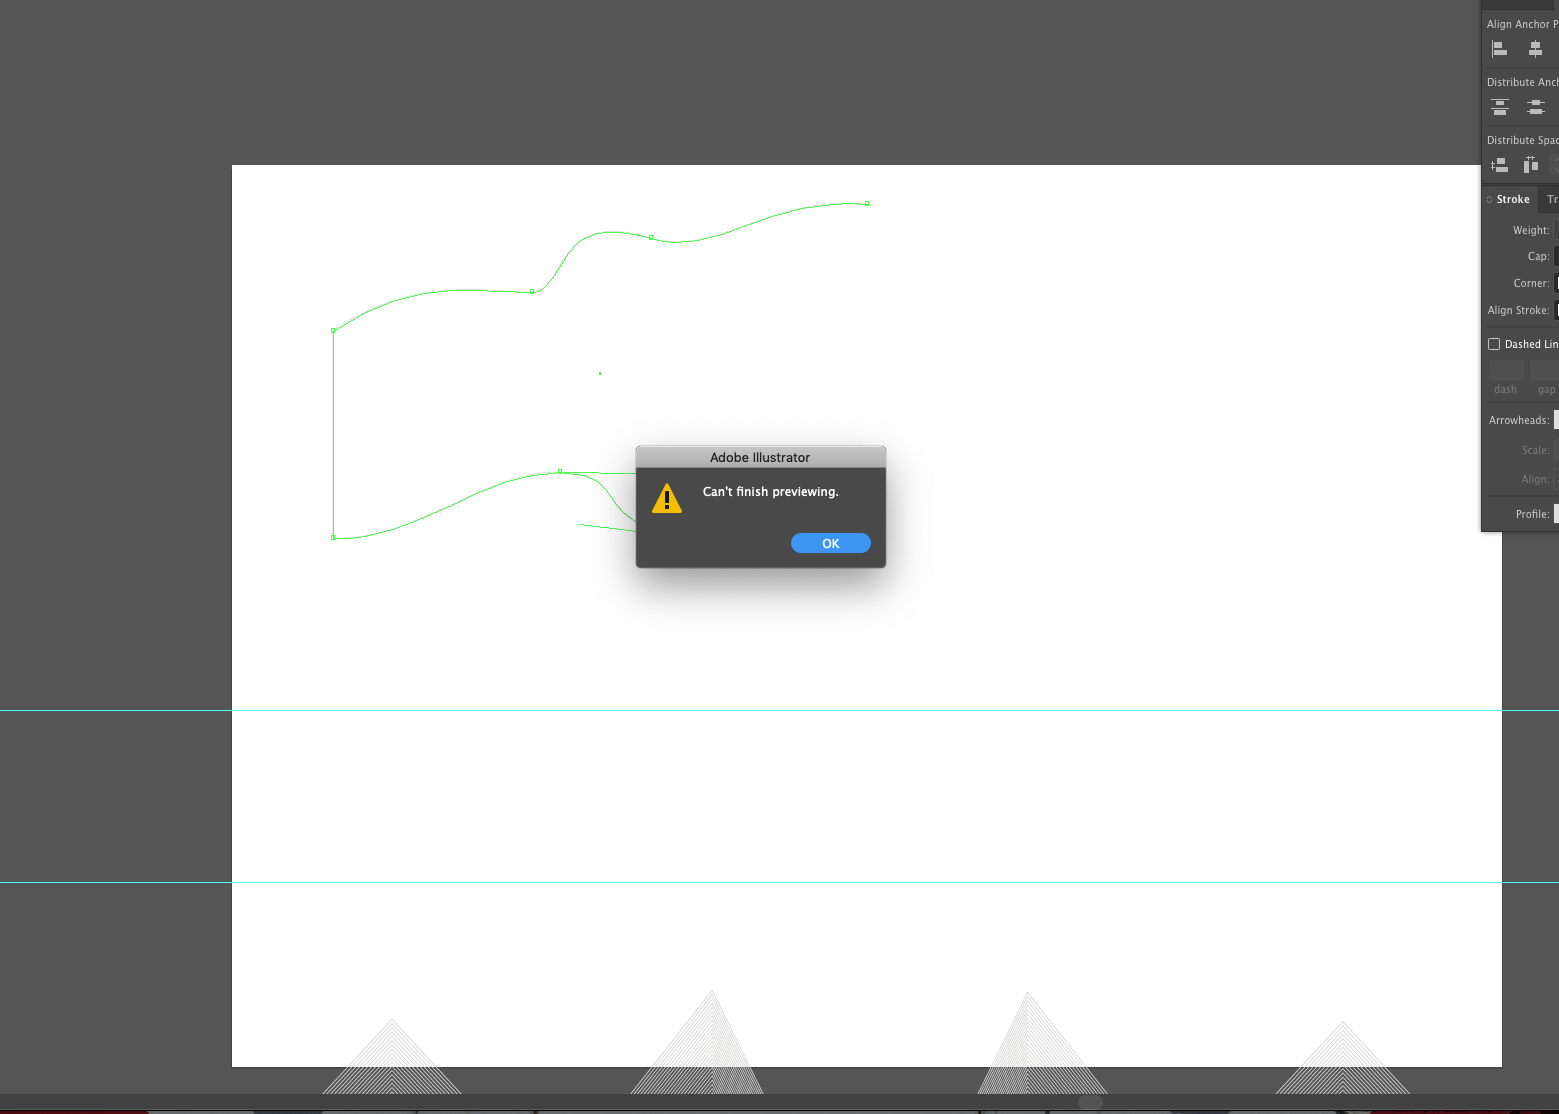 New Illustrator 23 0 not showing preview | Adobe Community